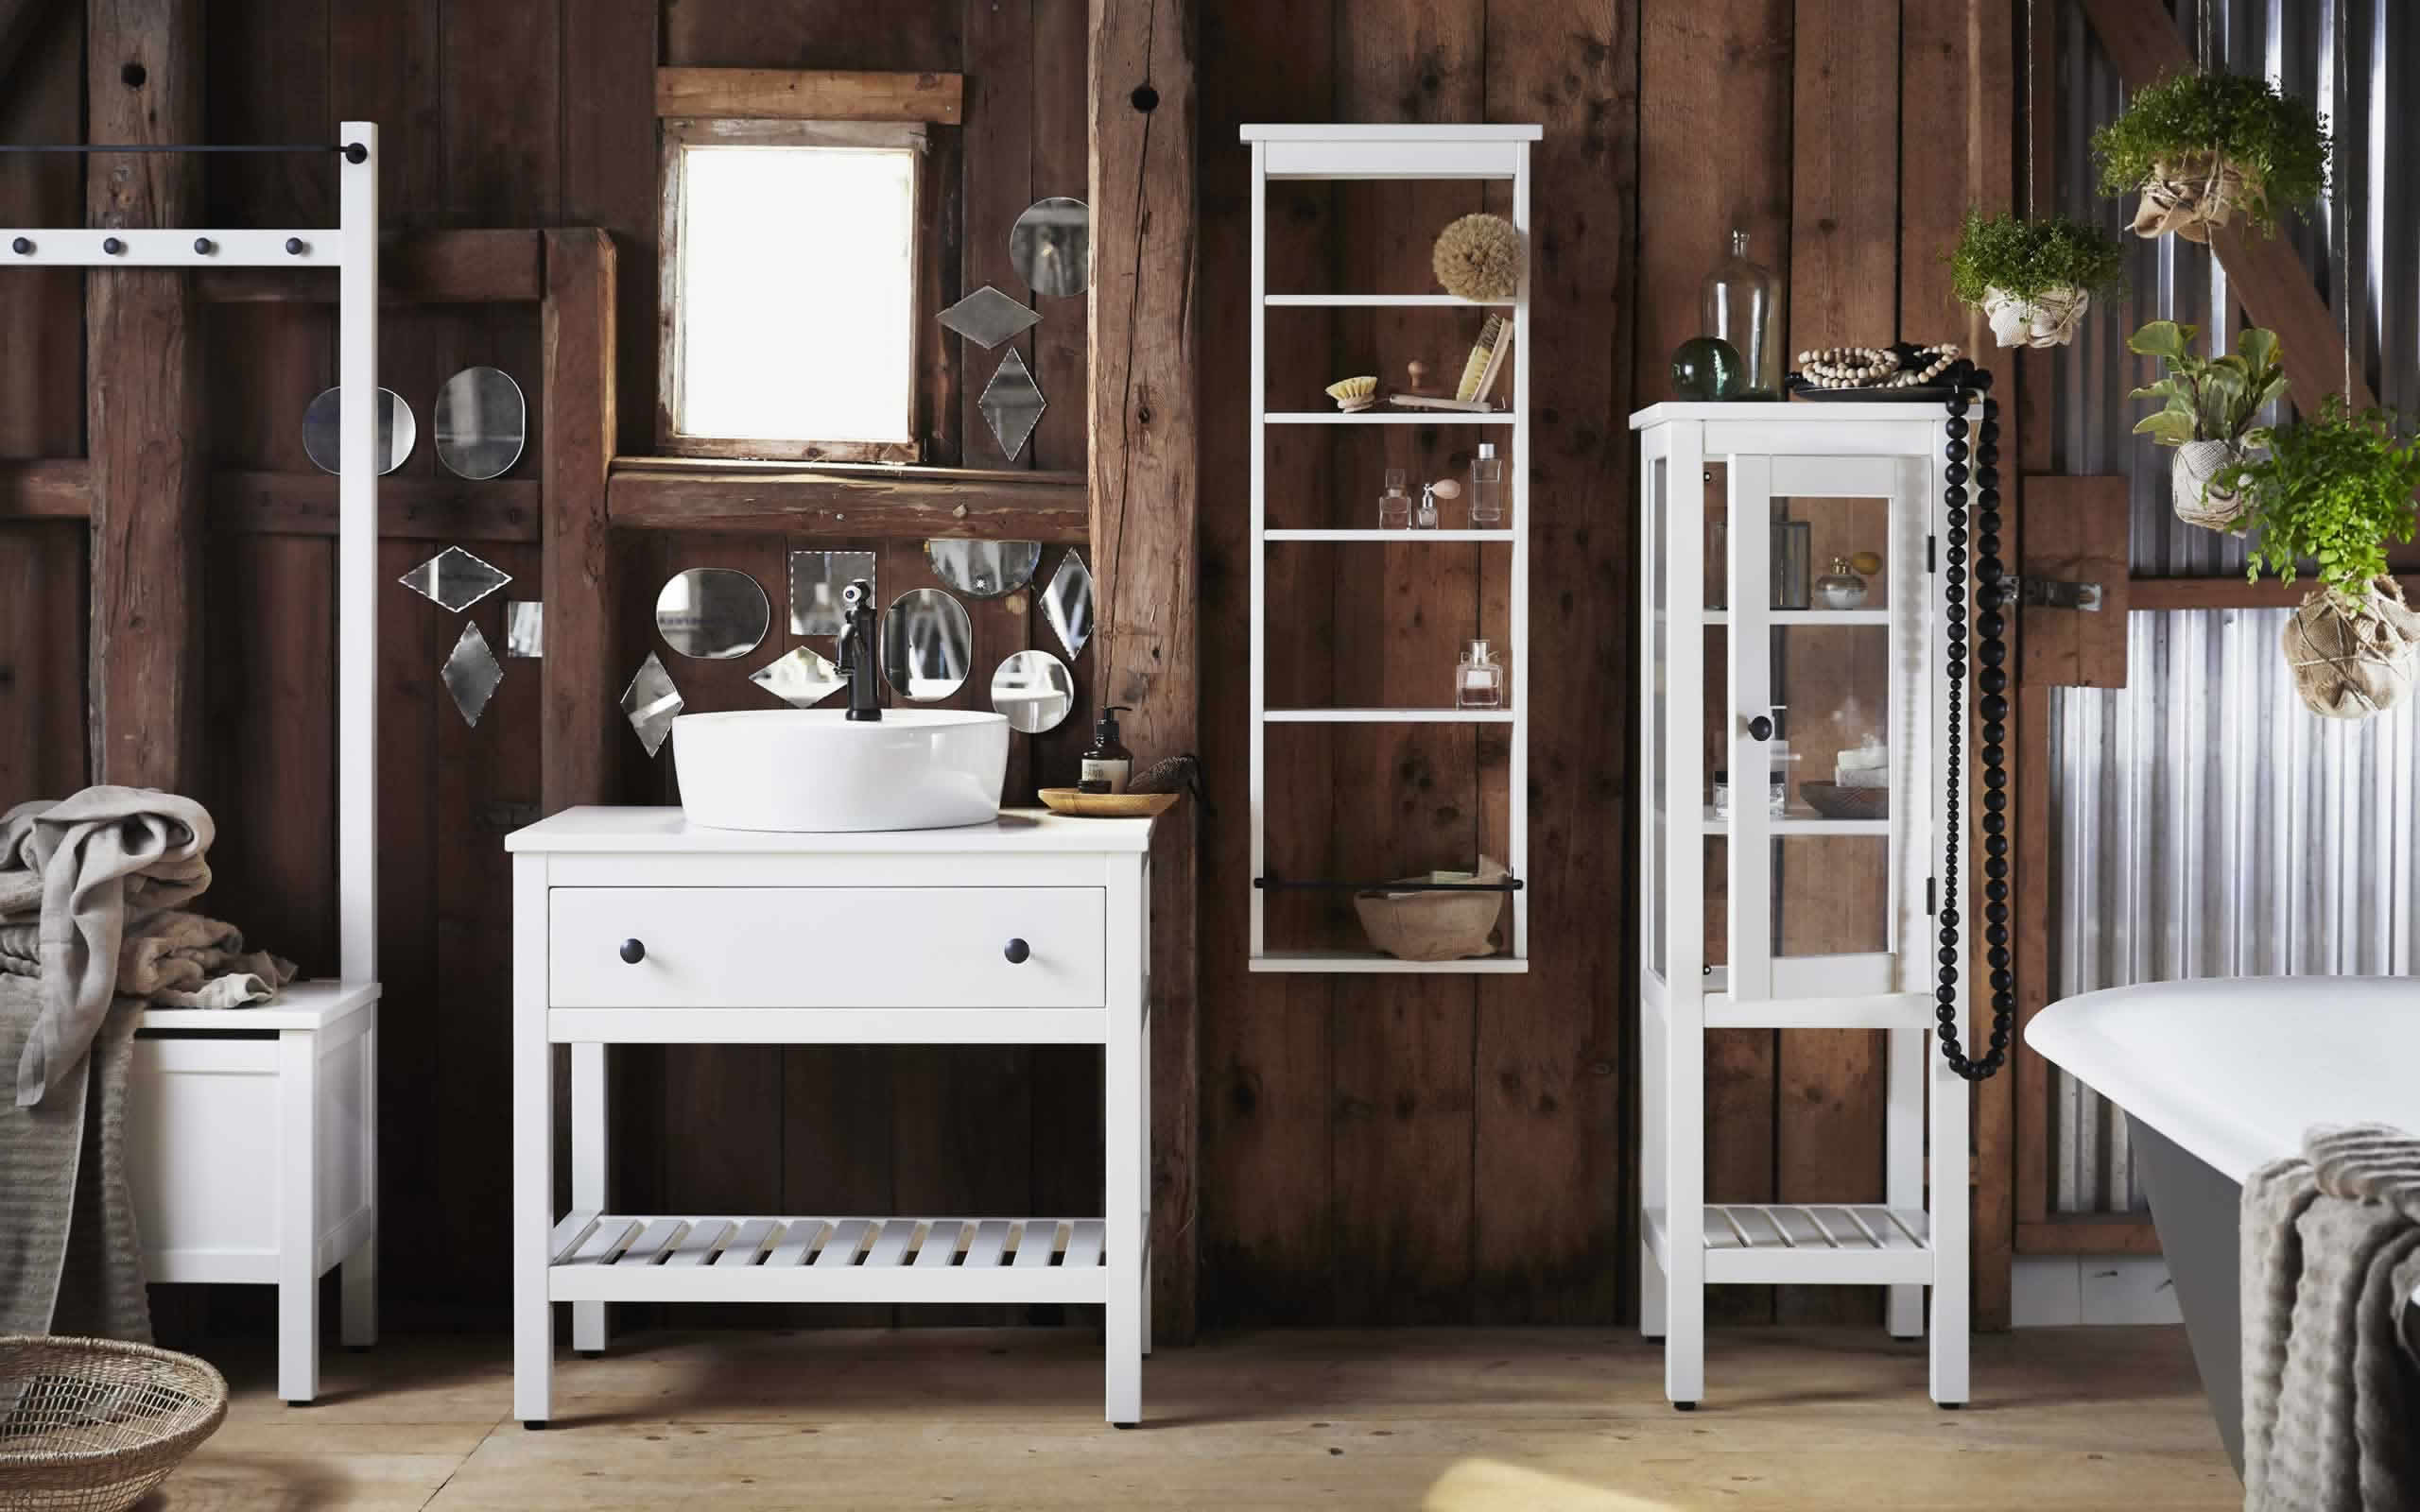 IKEA Ideas - Bathroom furniture designed to suit small spaces